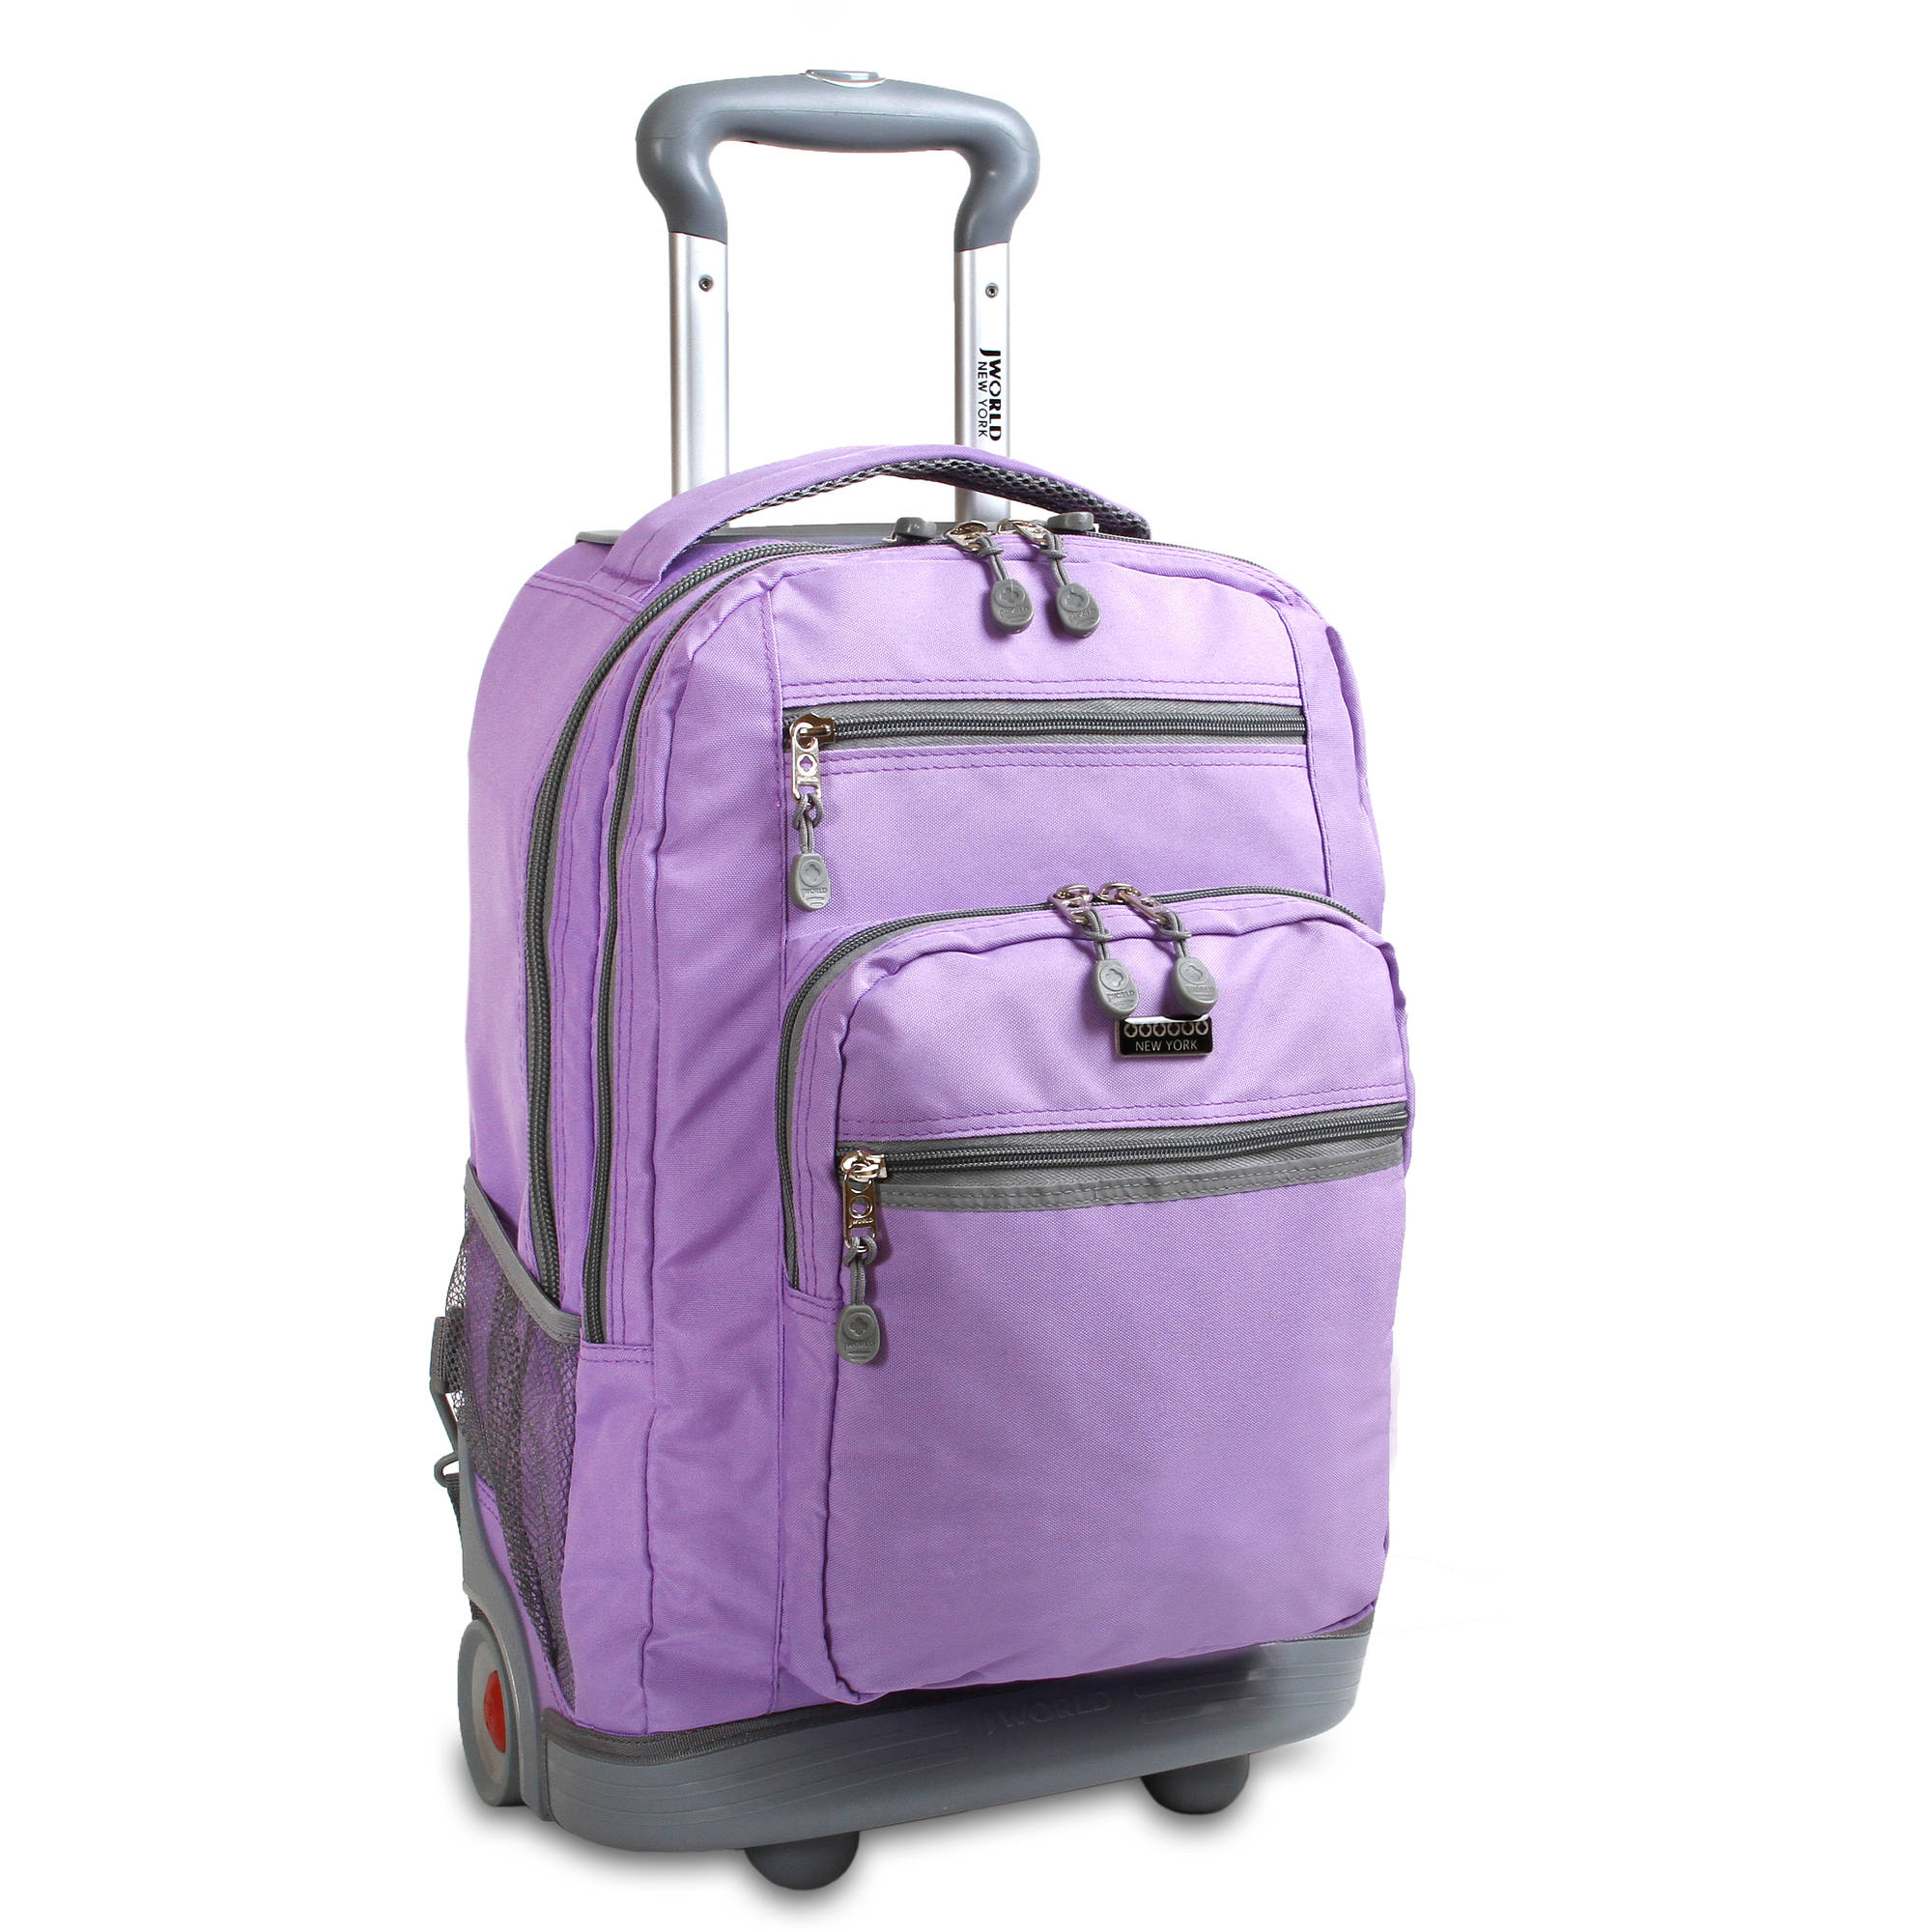 "J World Sundance II 20"" Rolling Laptop Backpack"